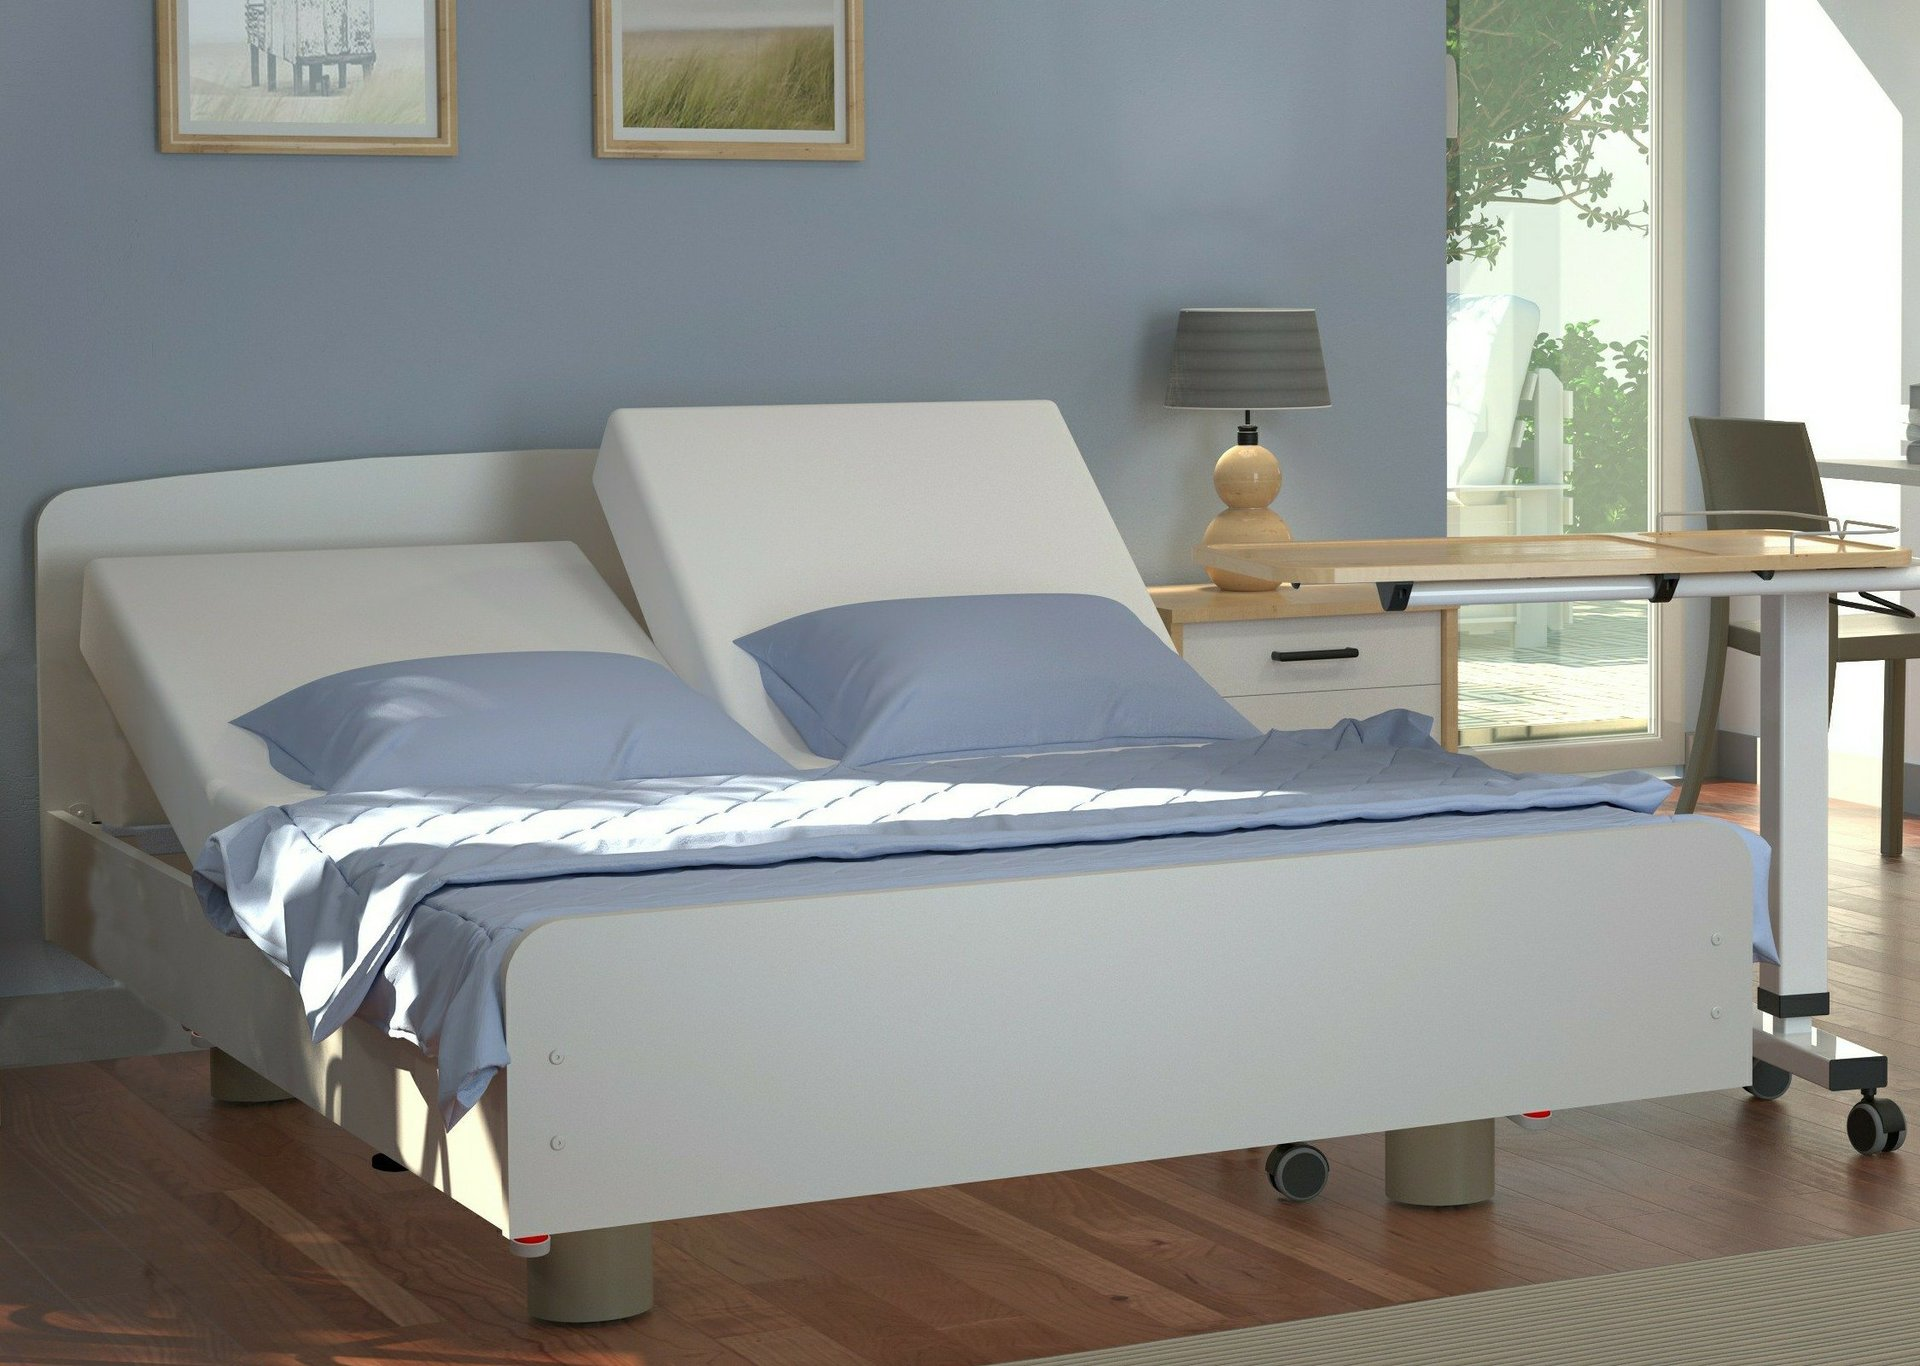 Baroness twin profiling, height adjustable bed.